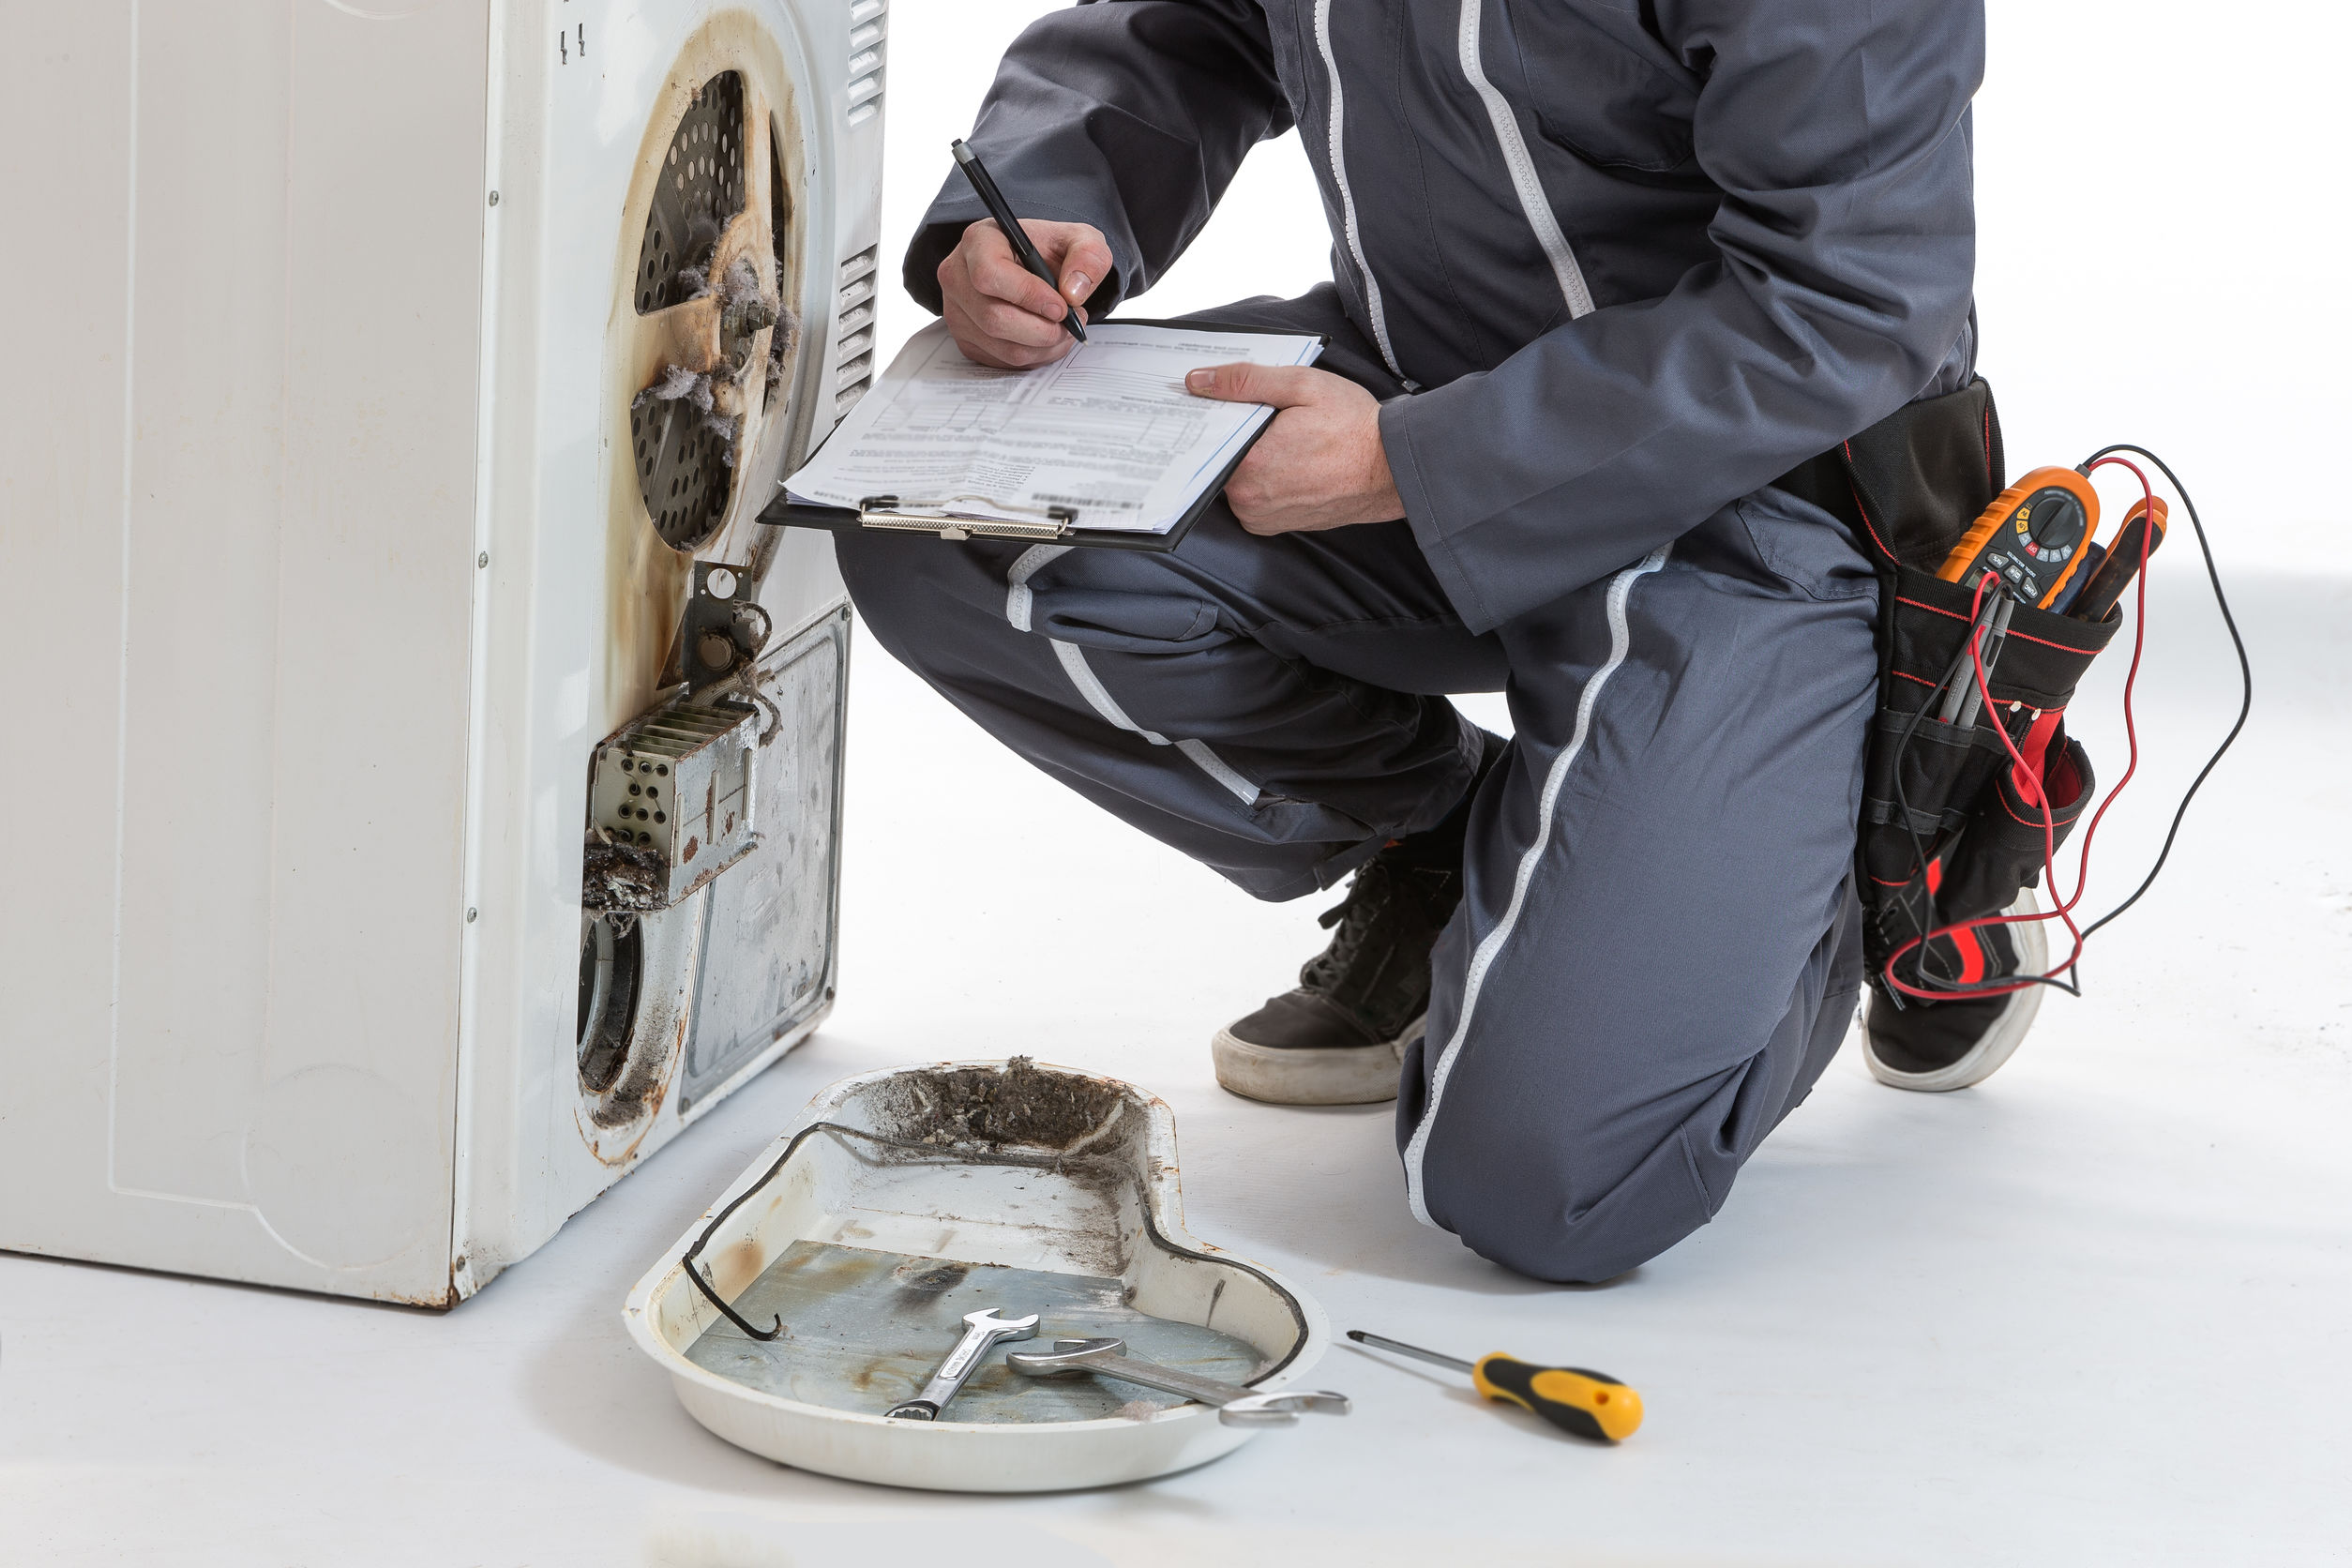 Service Technicians Ratify New National Contract with GE-Haier